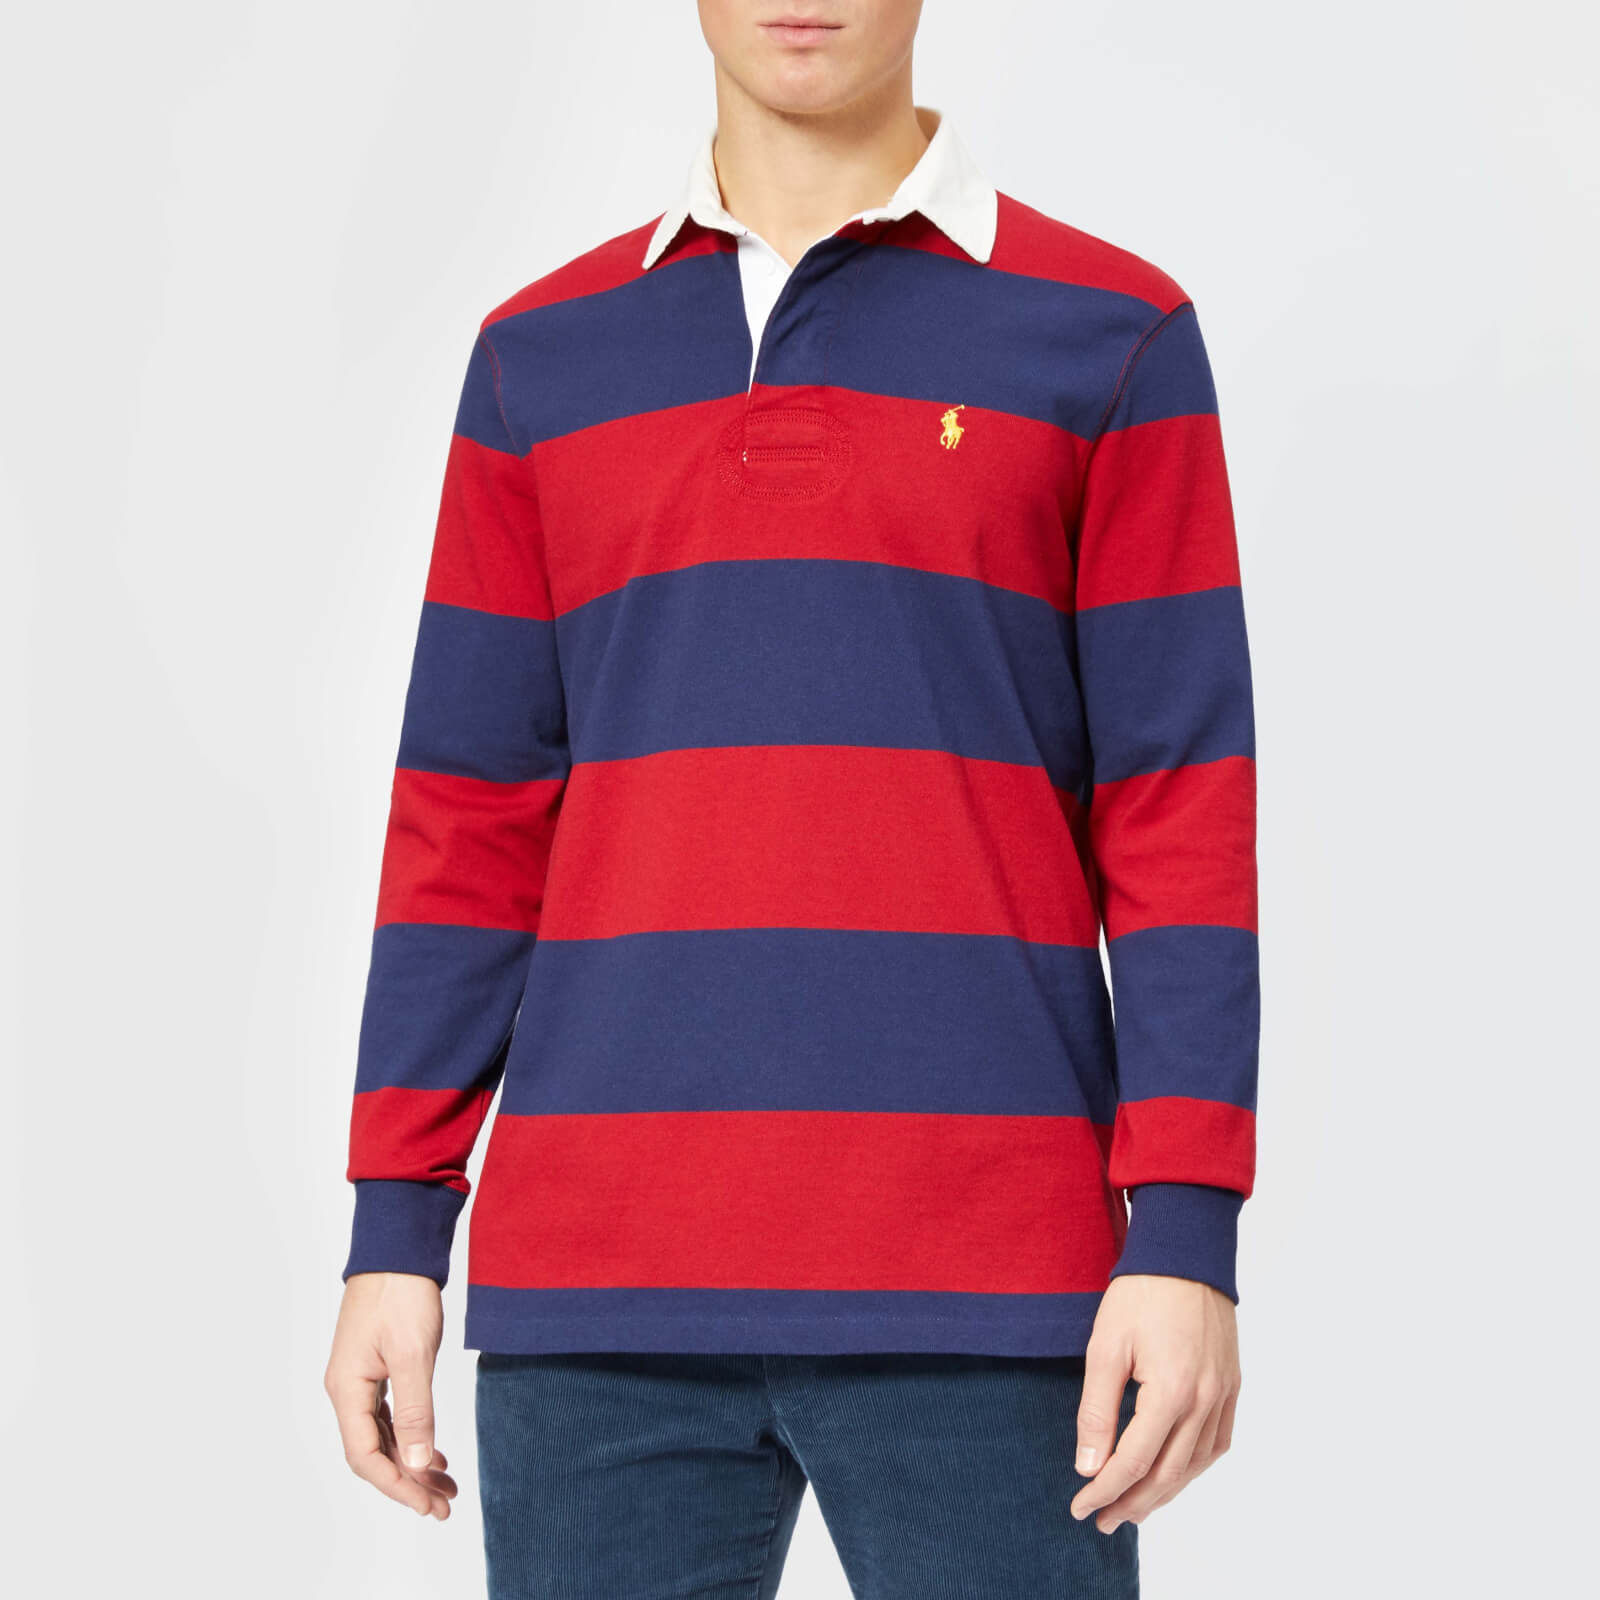 95e8f3ad88f Polo Ralph Lauren Men's Stripe Long Sleeve Rugby Shirt - Eaton Red/Newport  Navy - Free UK Delivery over £50